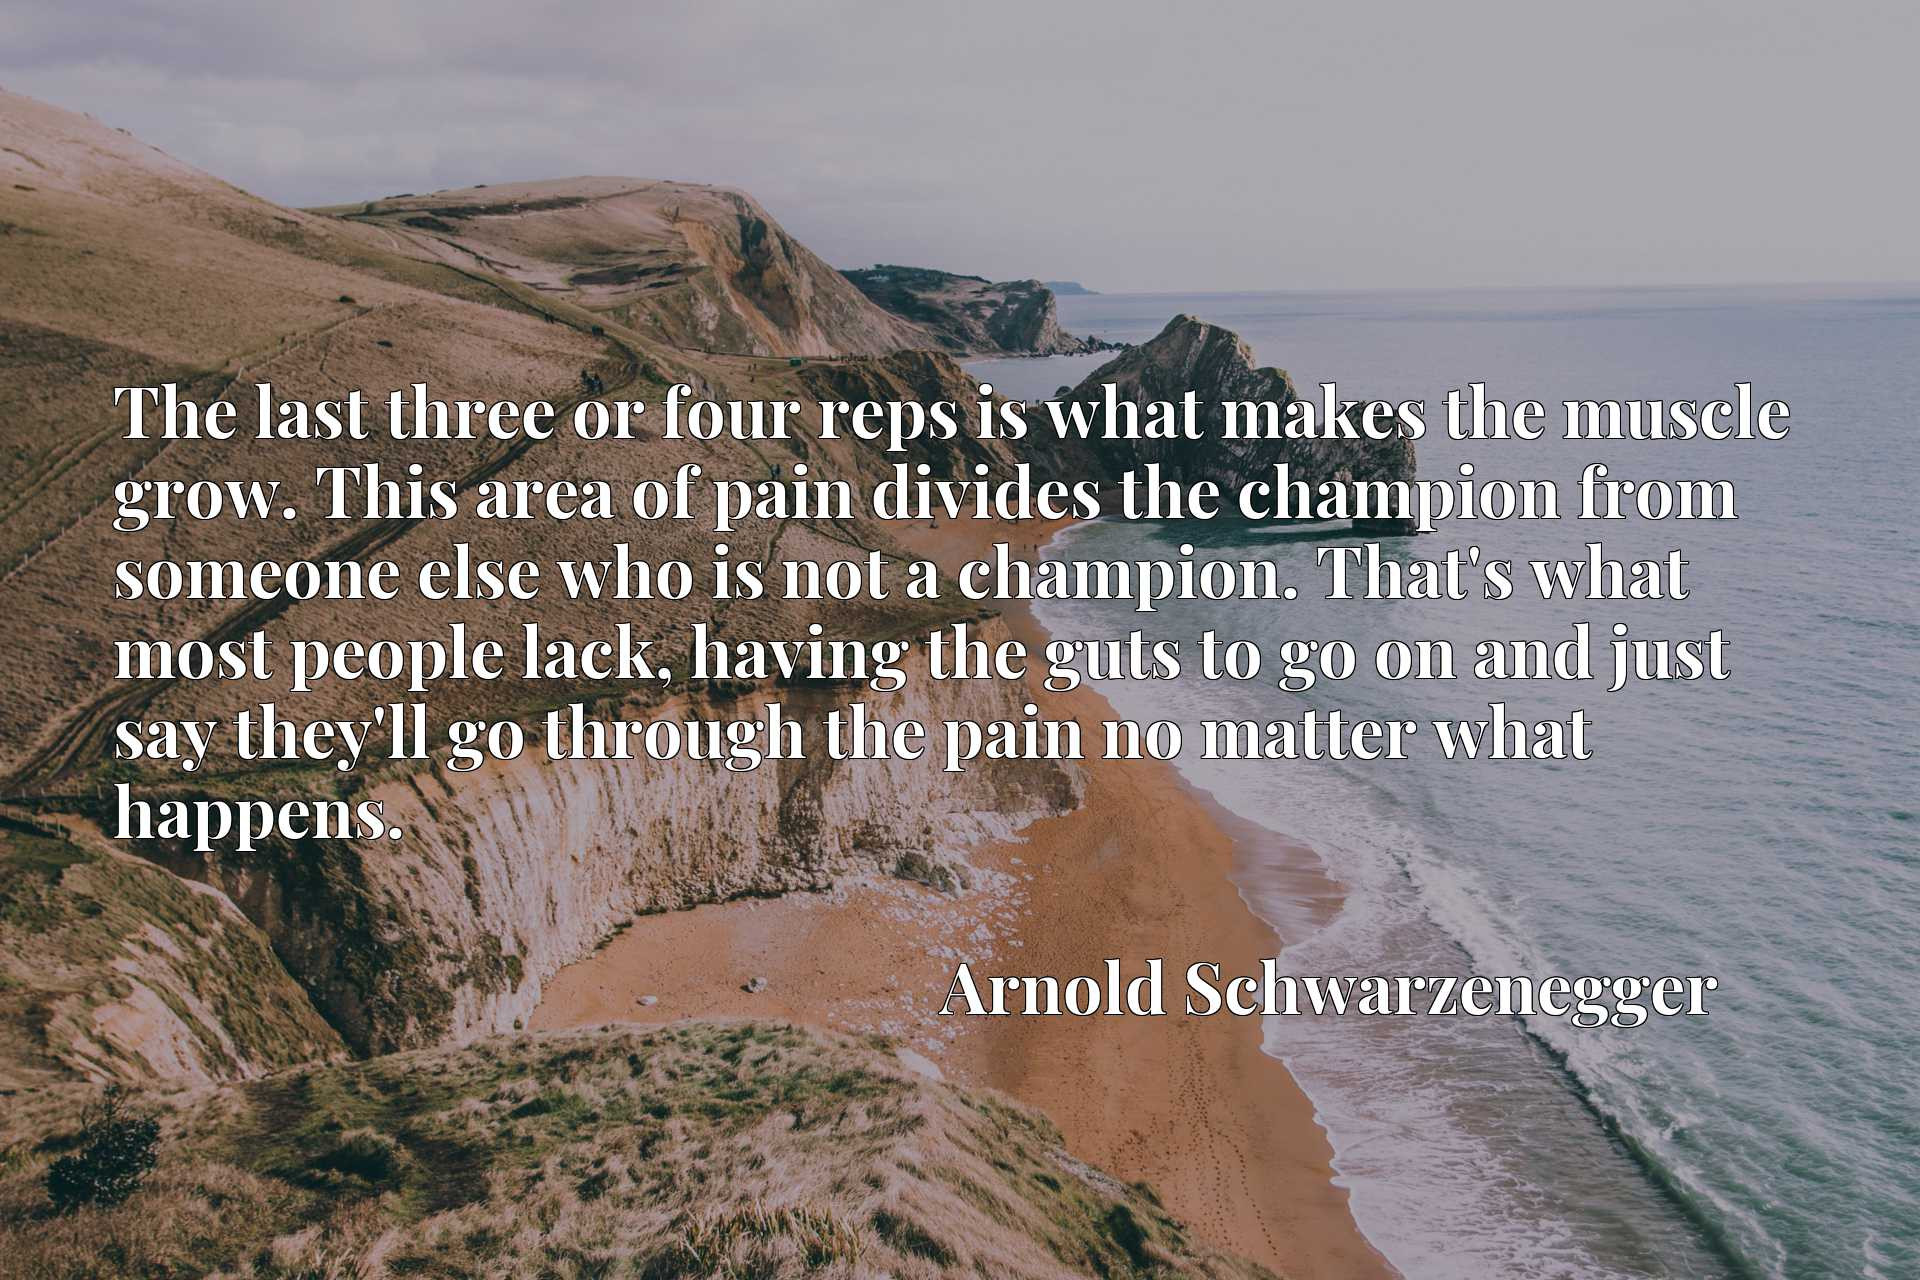 The last three or four reps is what makes the muscle grow. This area of pain divides the champion from someone else who is not a champion. That's what most people lack, having the guts to go on and just say they'll go through the pain no matter what happens.